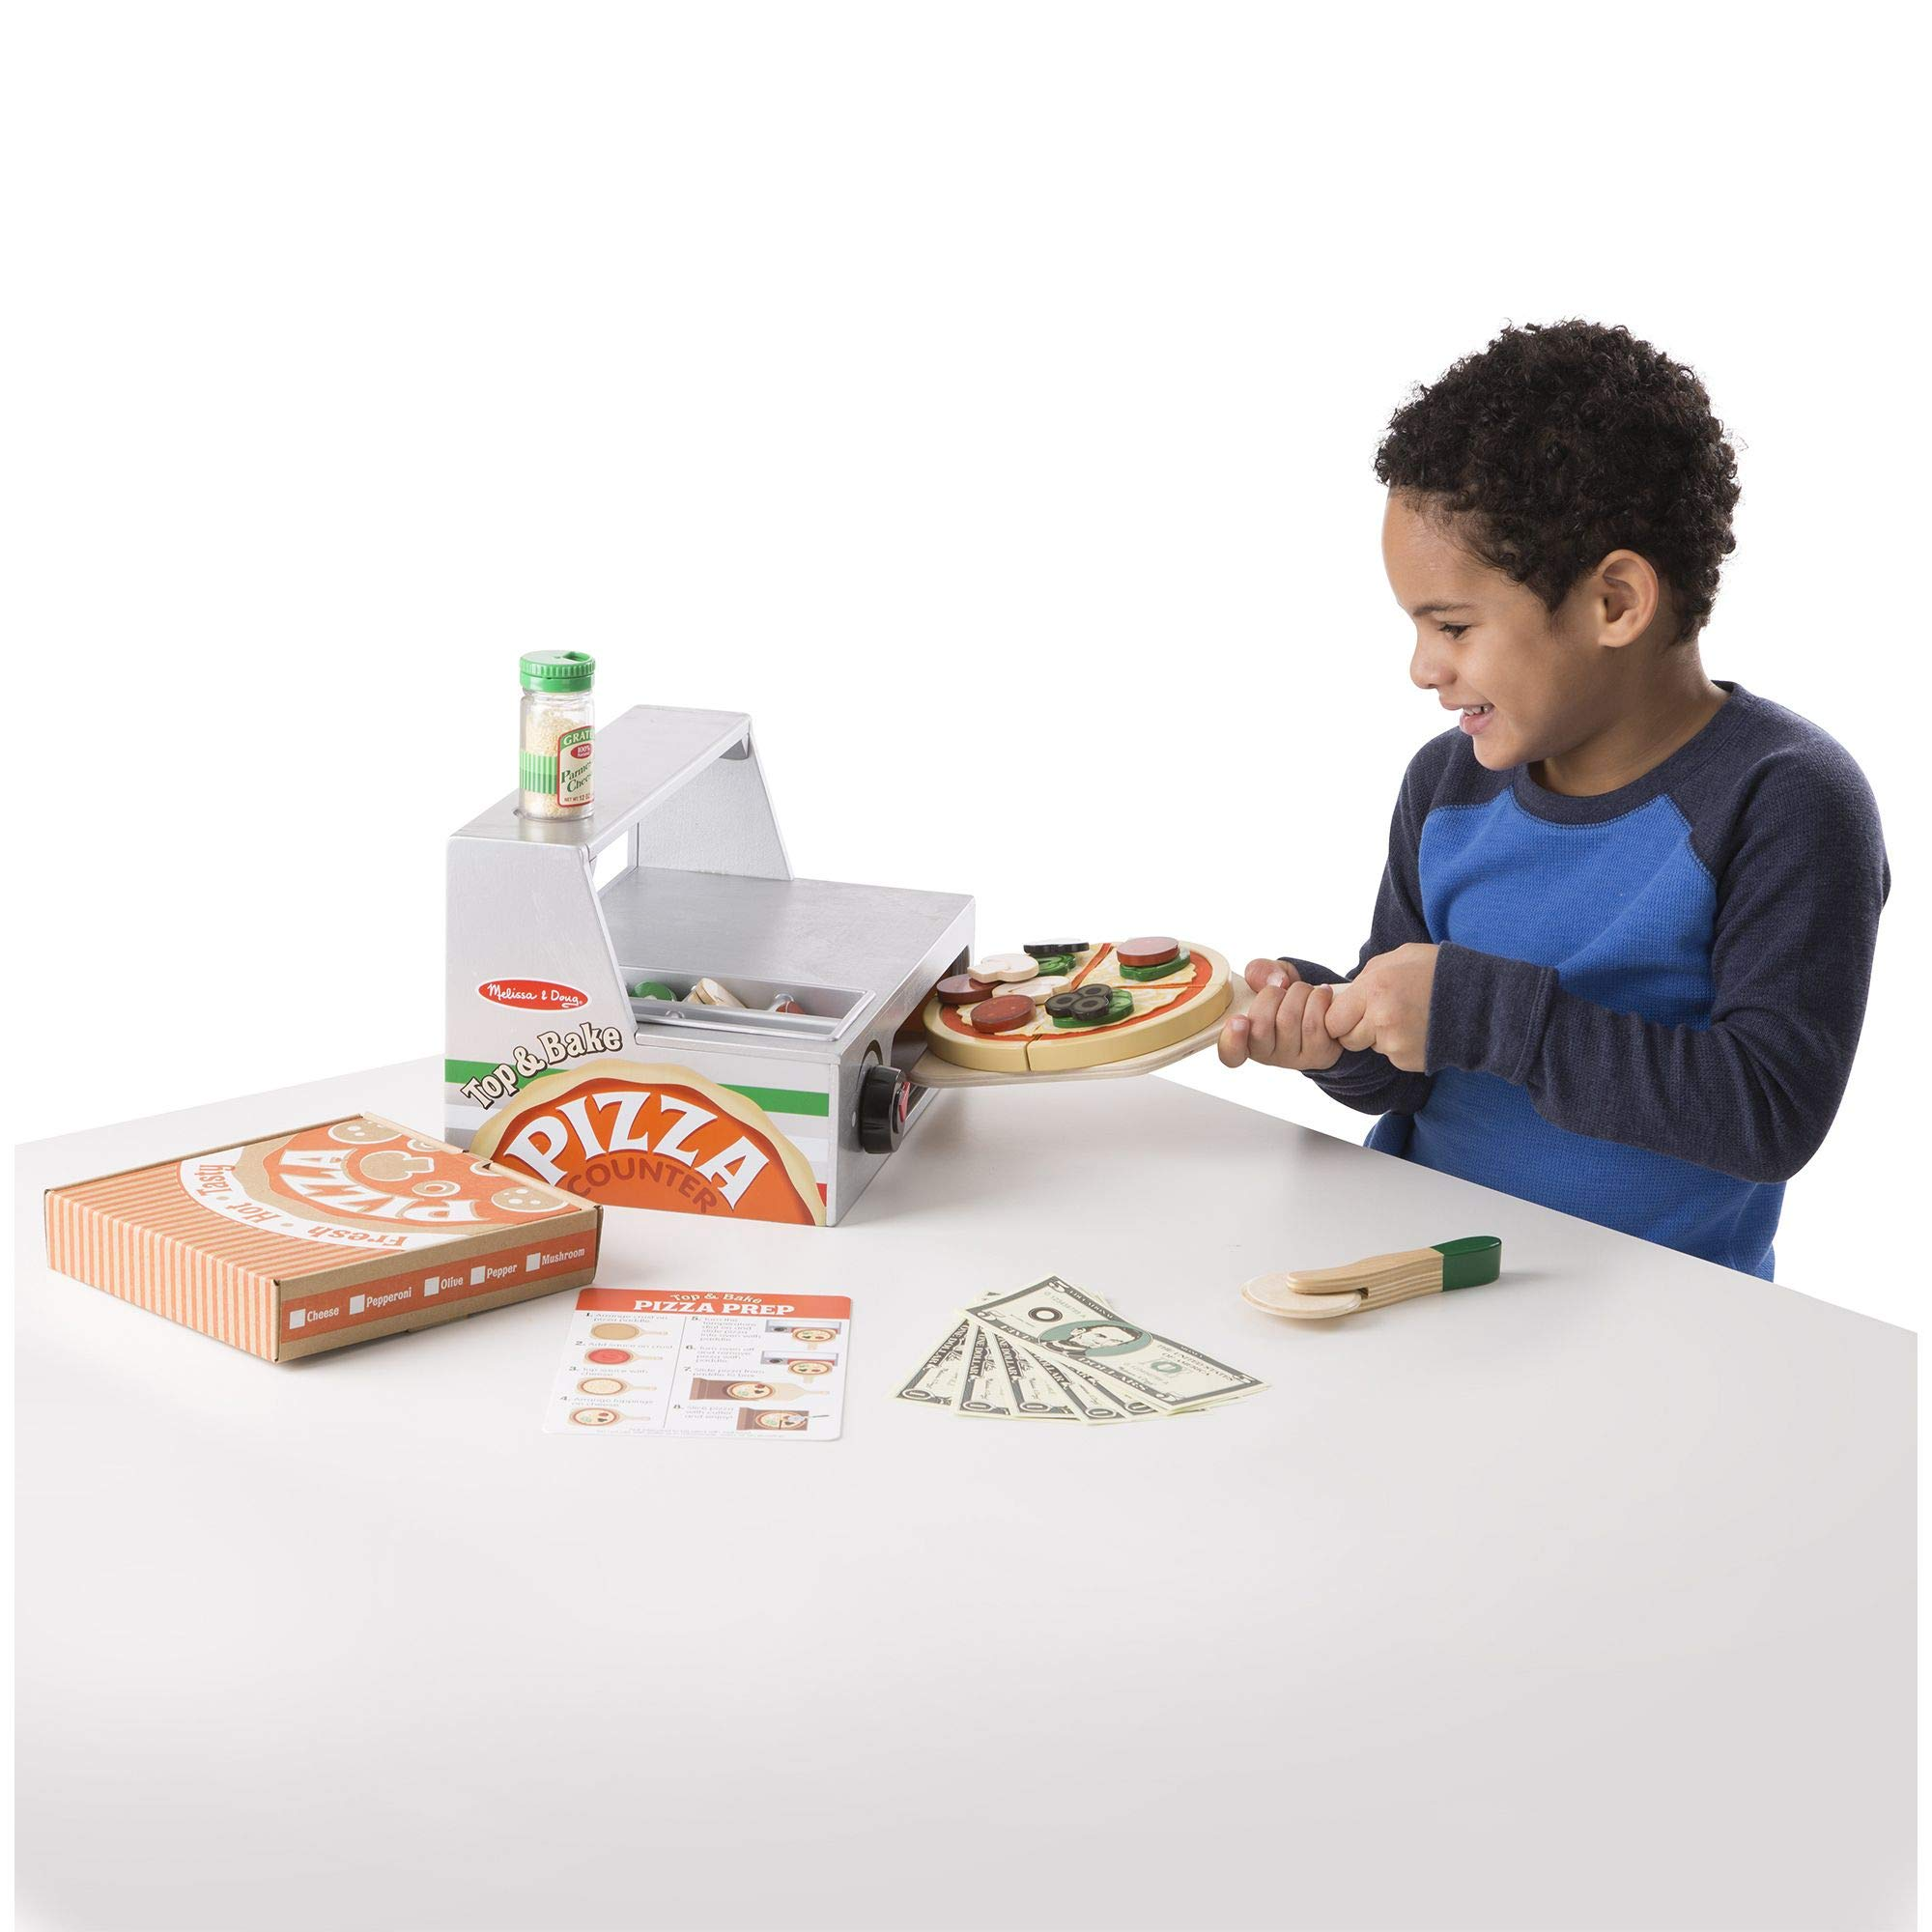 Melissa & Doug Top and Bake Wooden Pizza Counter Play Food Set (Pretend Play, Helps Support Cognitive Development, 34 Pieces, 7.75'' H x 9.25'' W x 13.25'' L) by Melissa & Doug (Image #5)